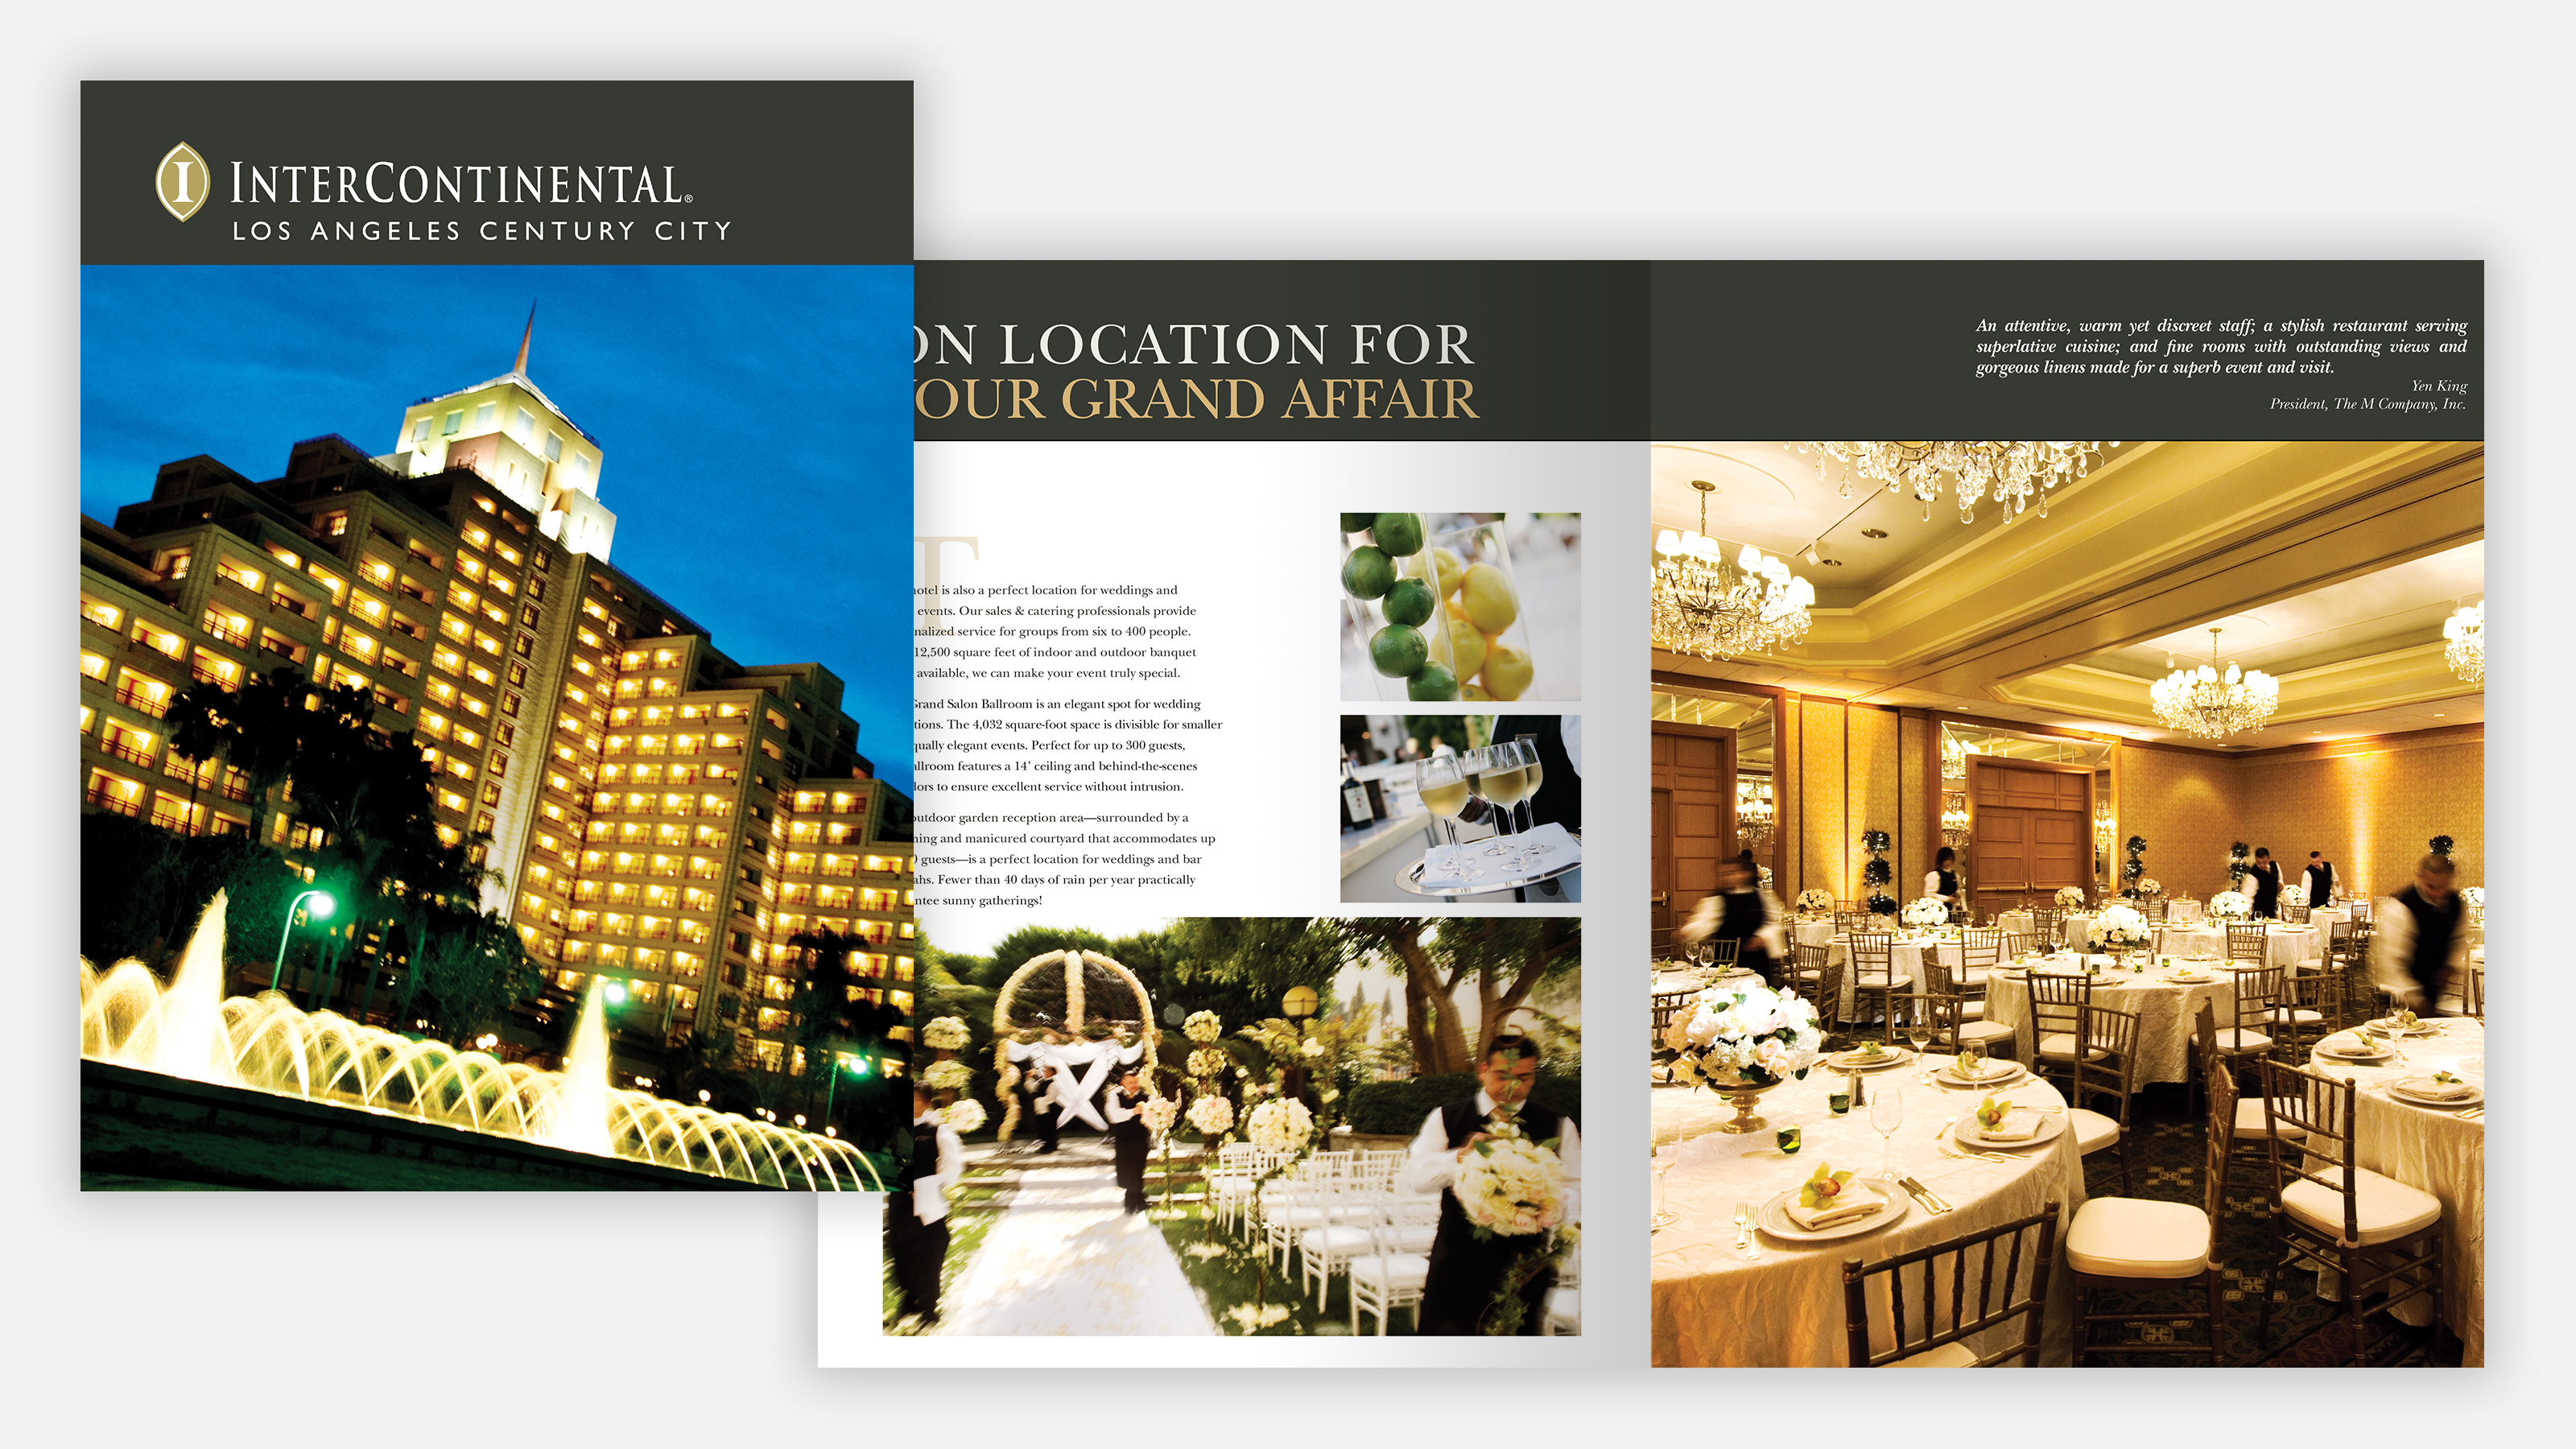 Intercontinental hotel marketing brochure